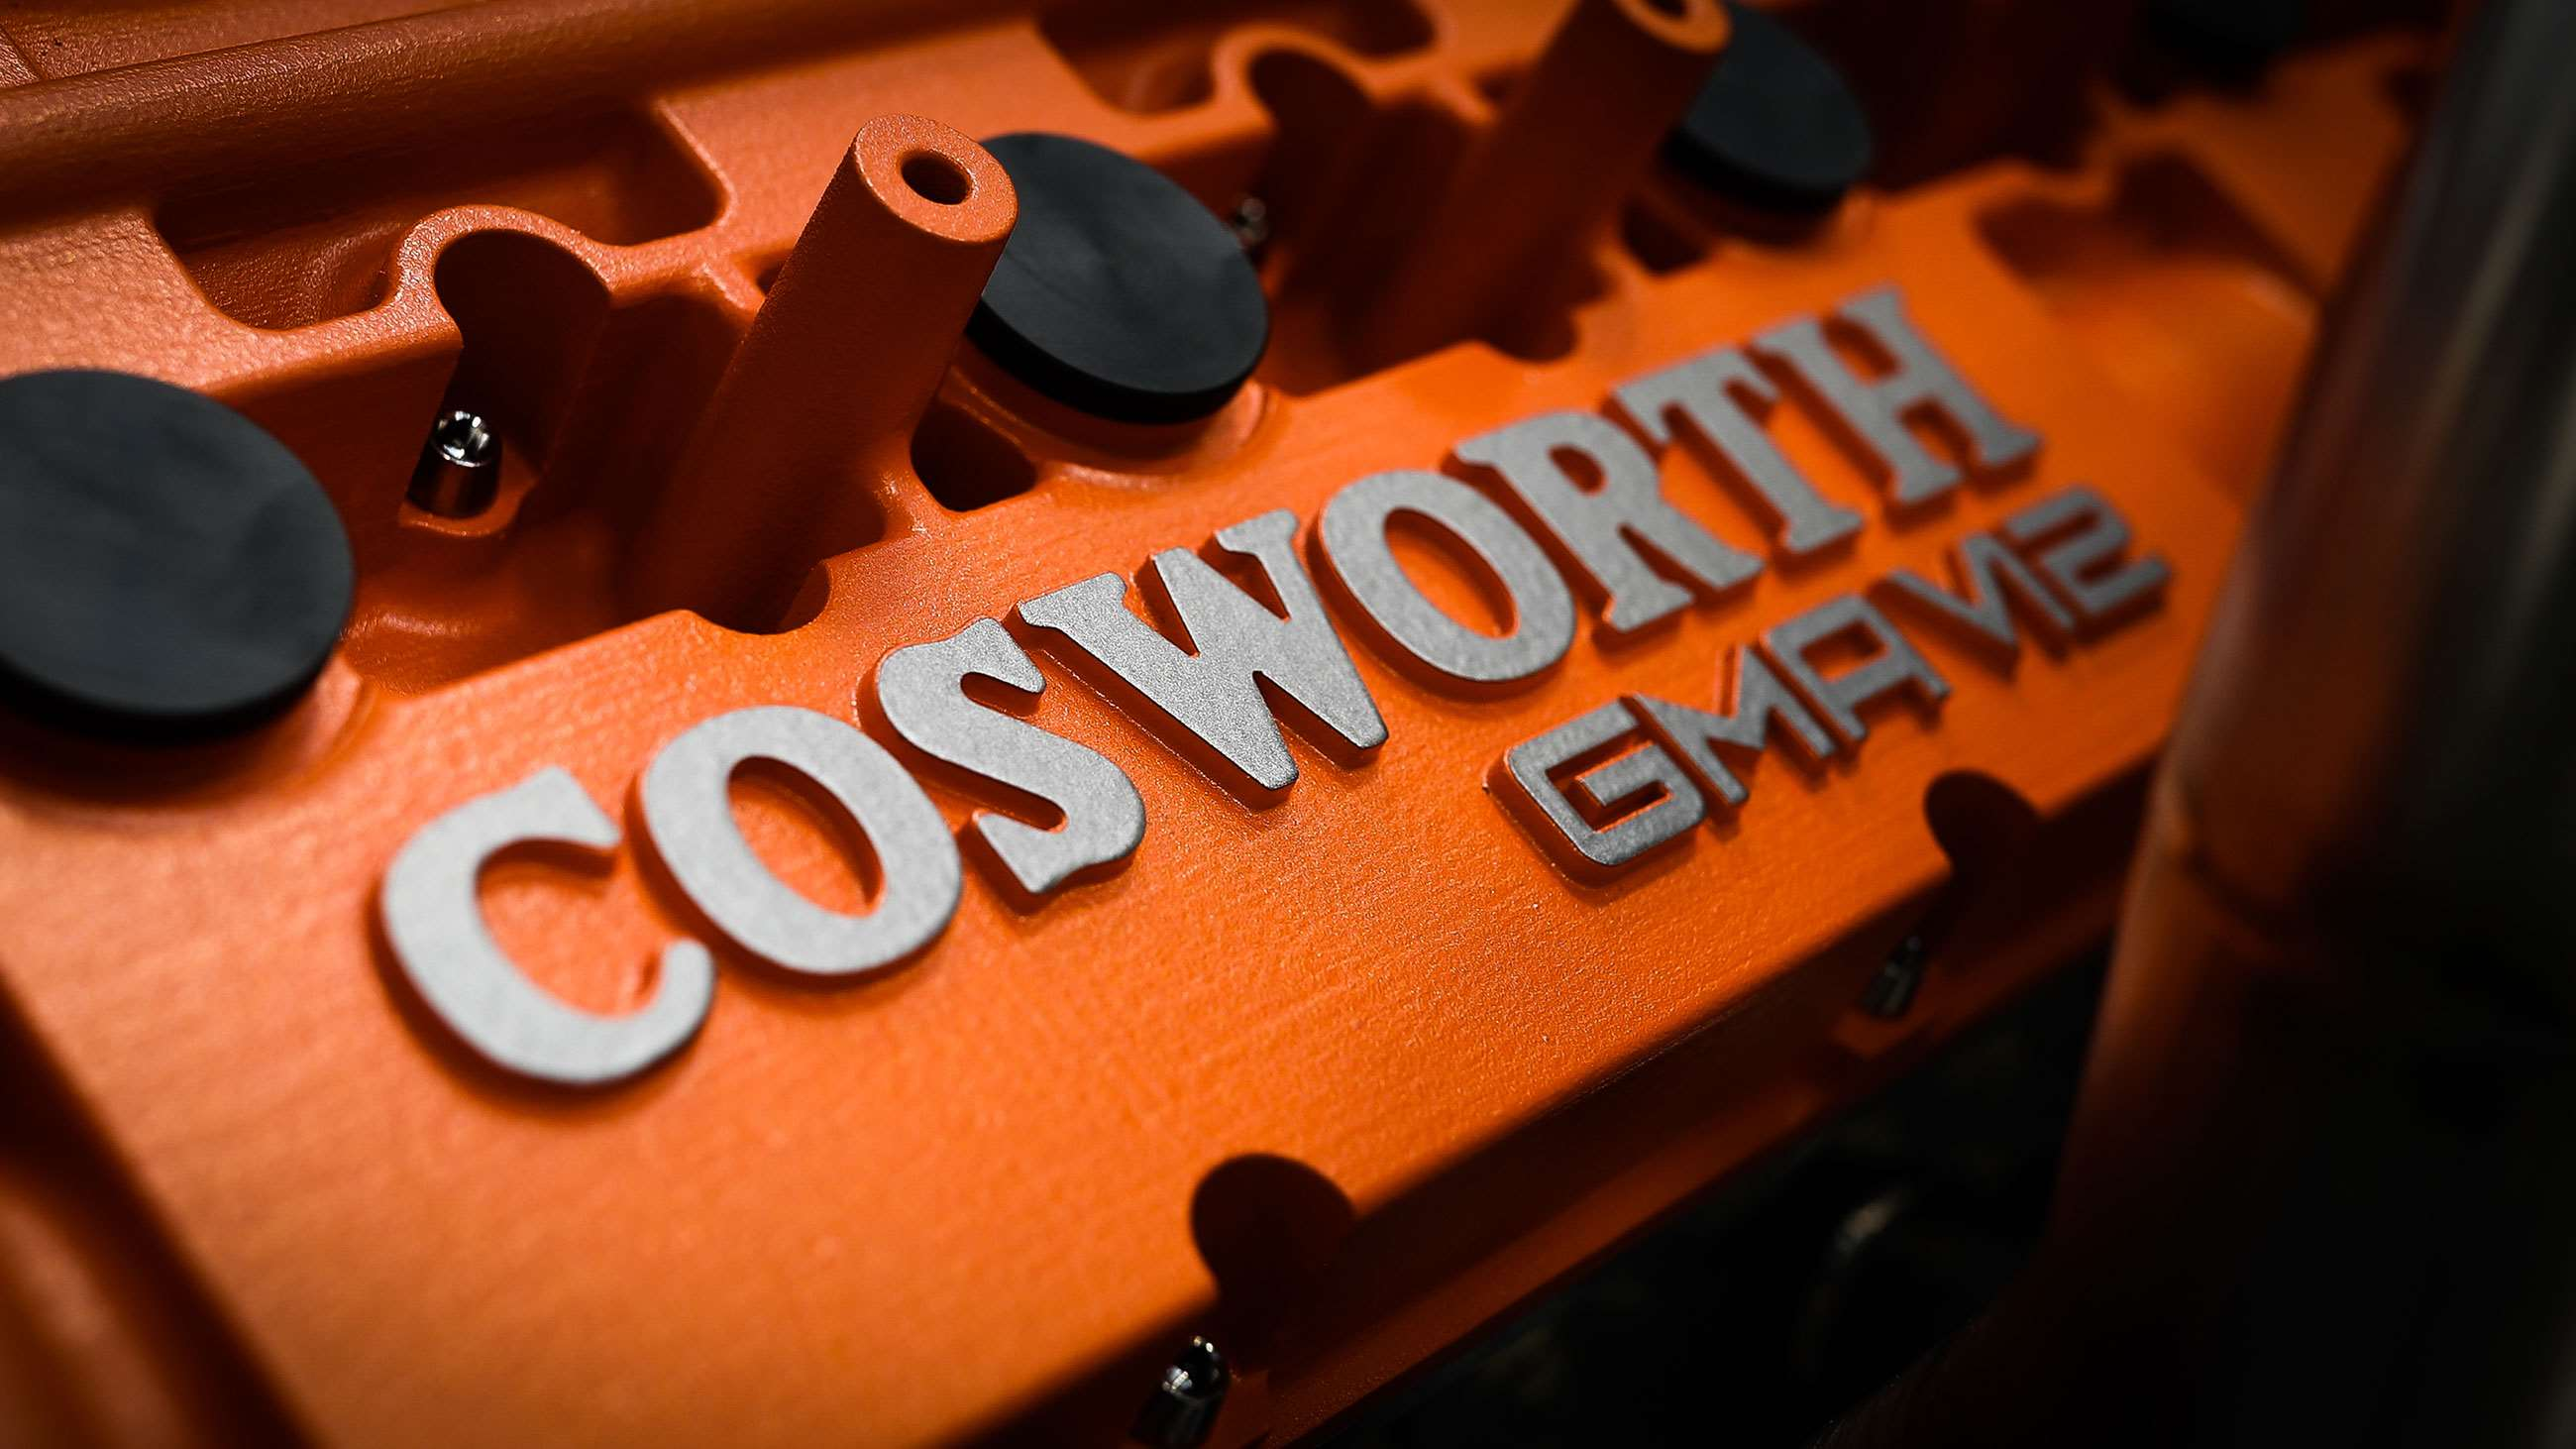 Gordon-Murray-Automotive-V12-Cosworth-Goodwood-22072020.jpg